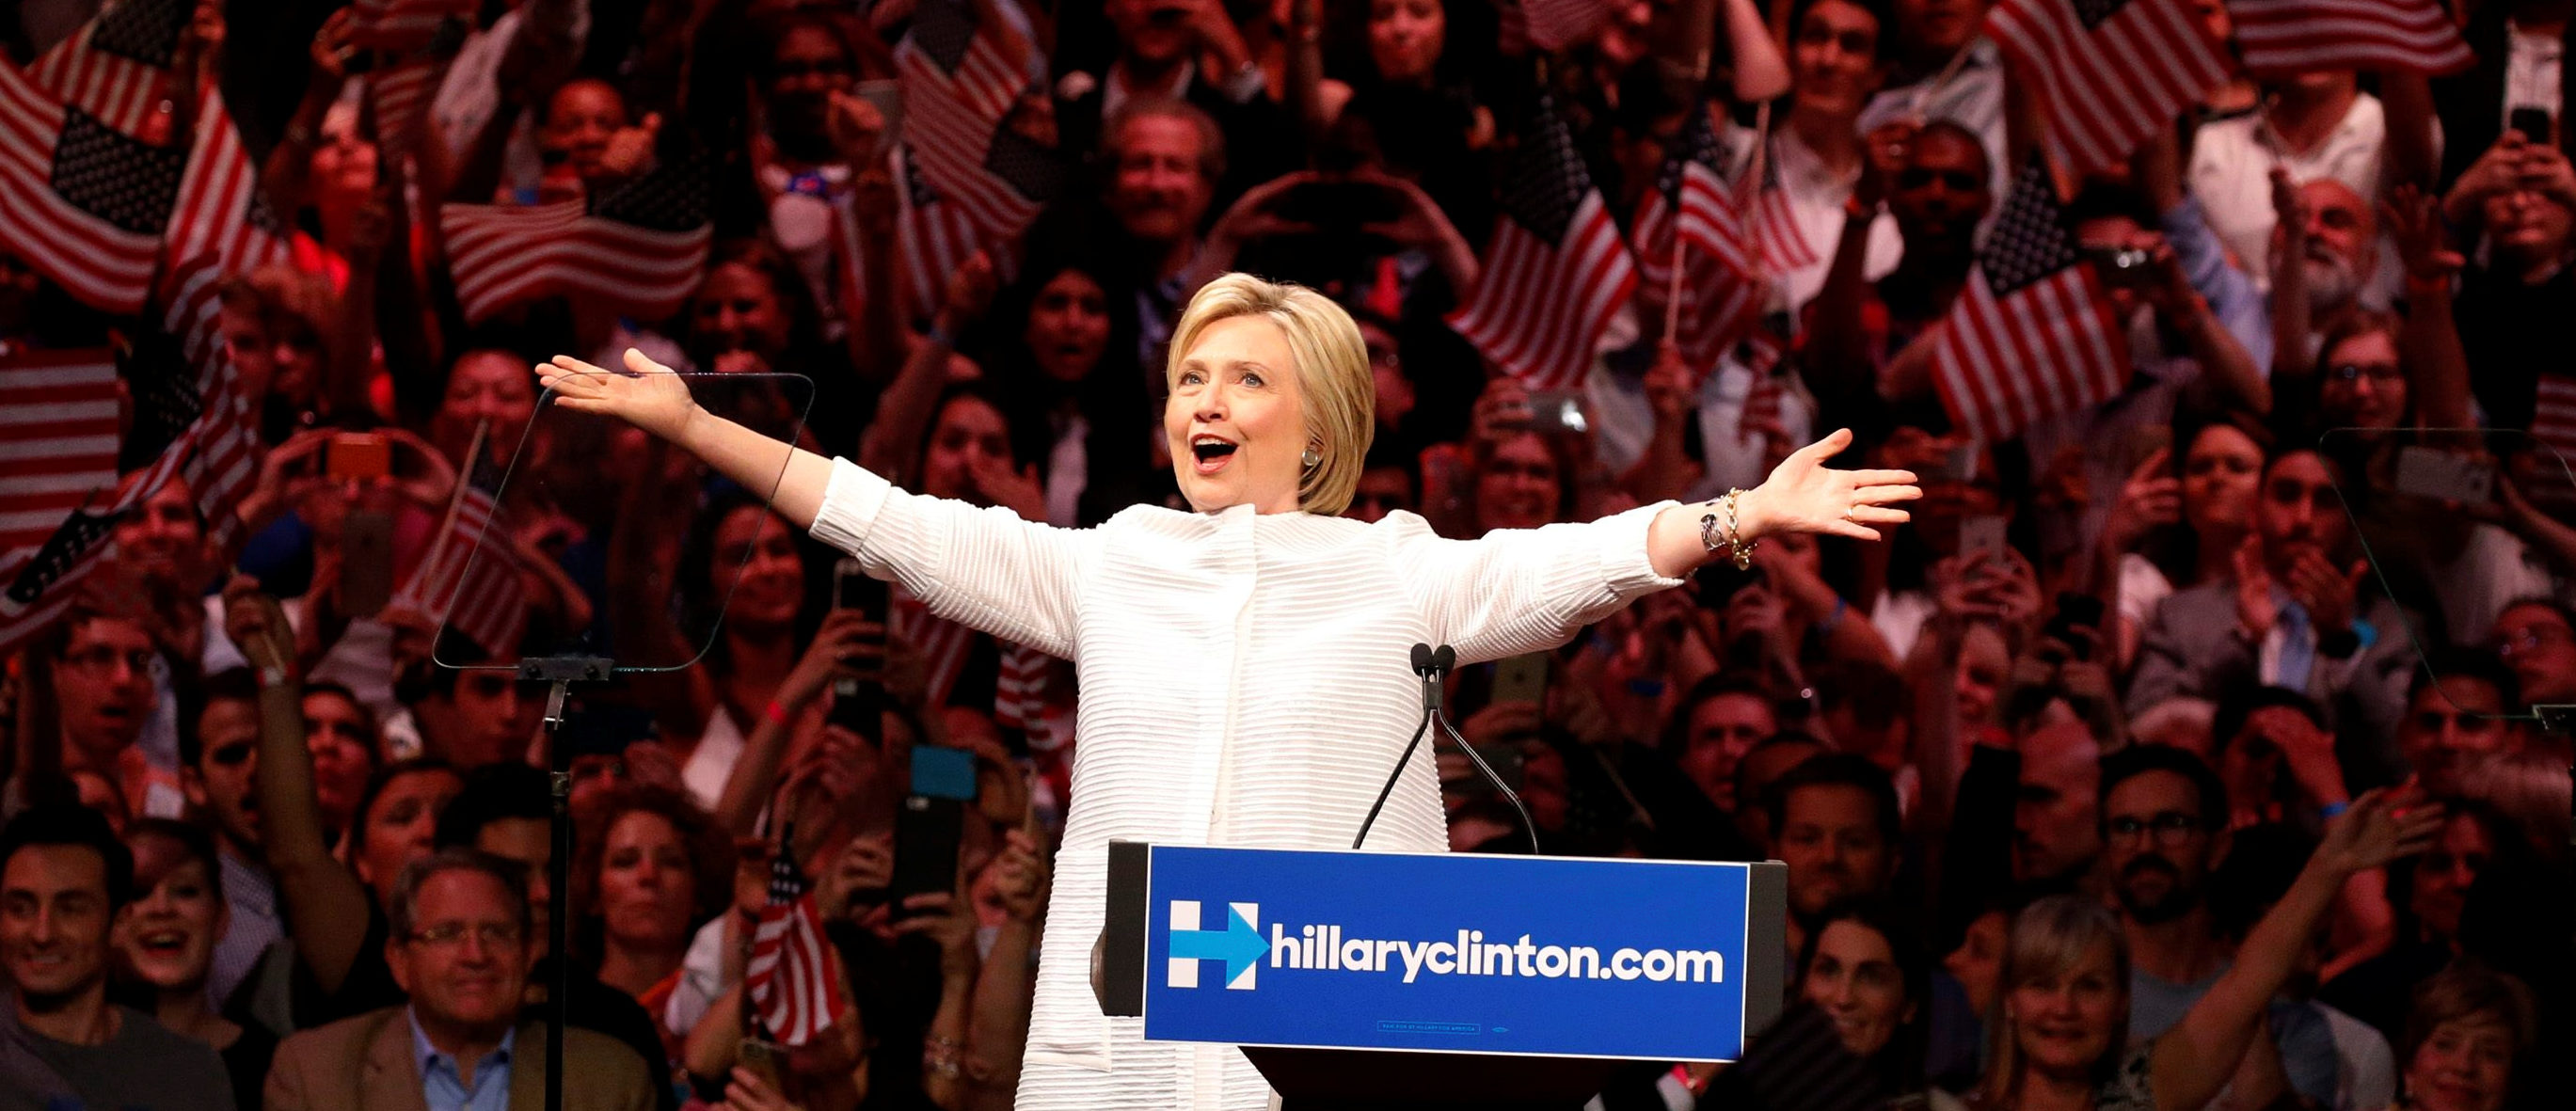 New Poll Says Hillary Would Win In A 2016 Do-Over